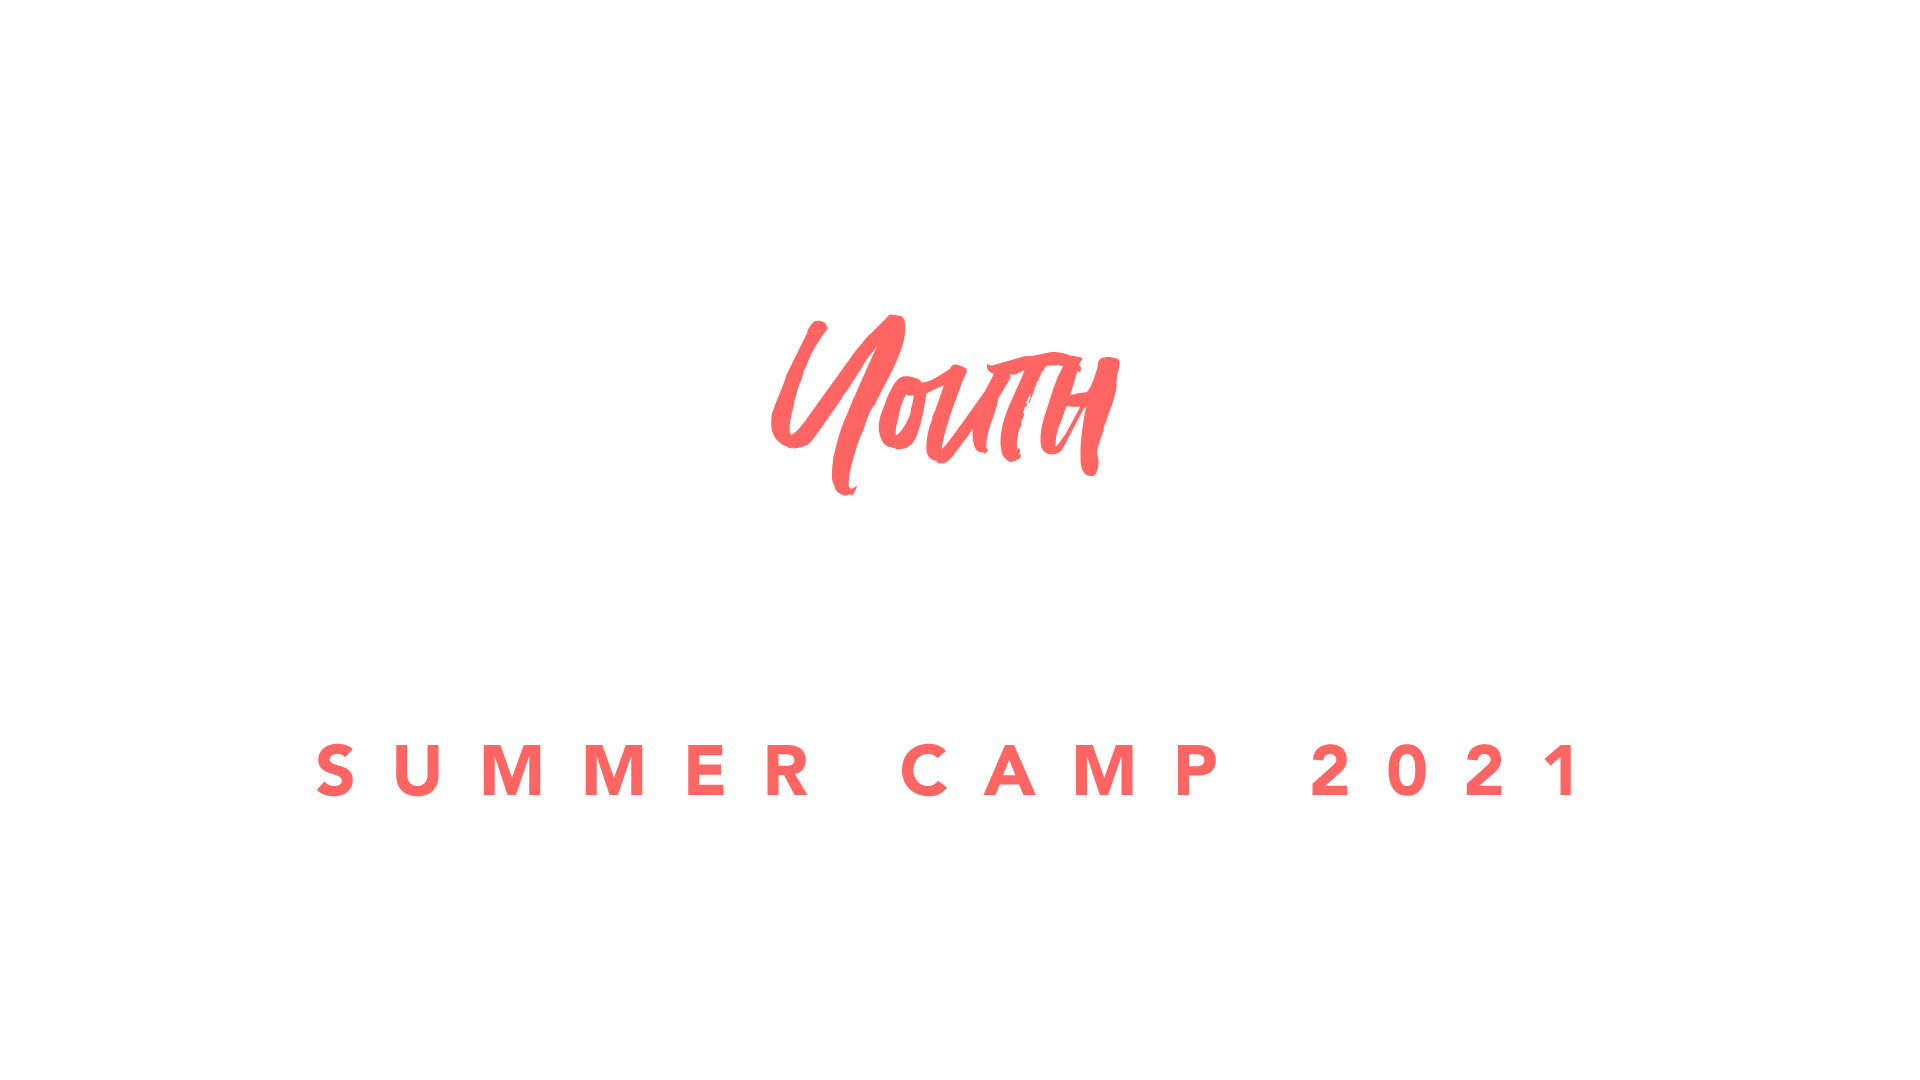 Youth-Summer-Camp-Houseboats_transparent